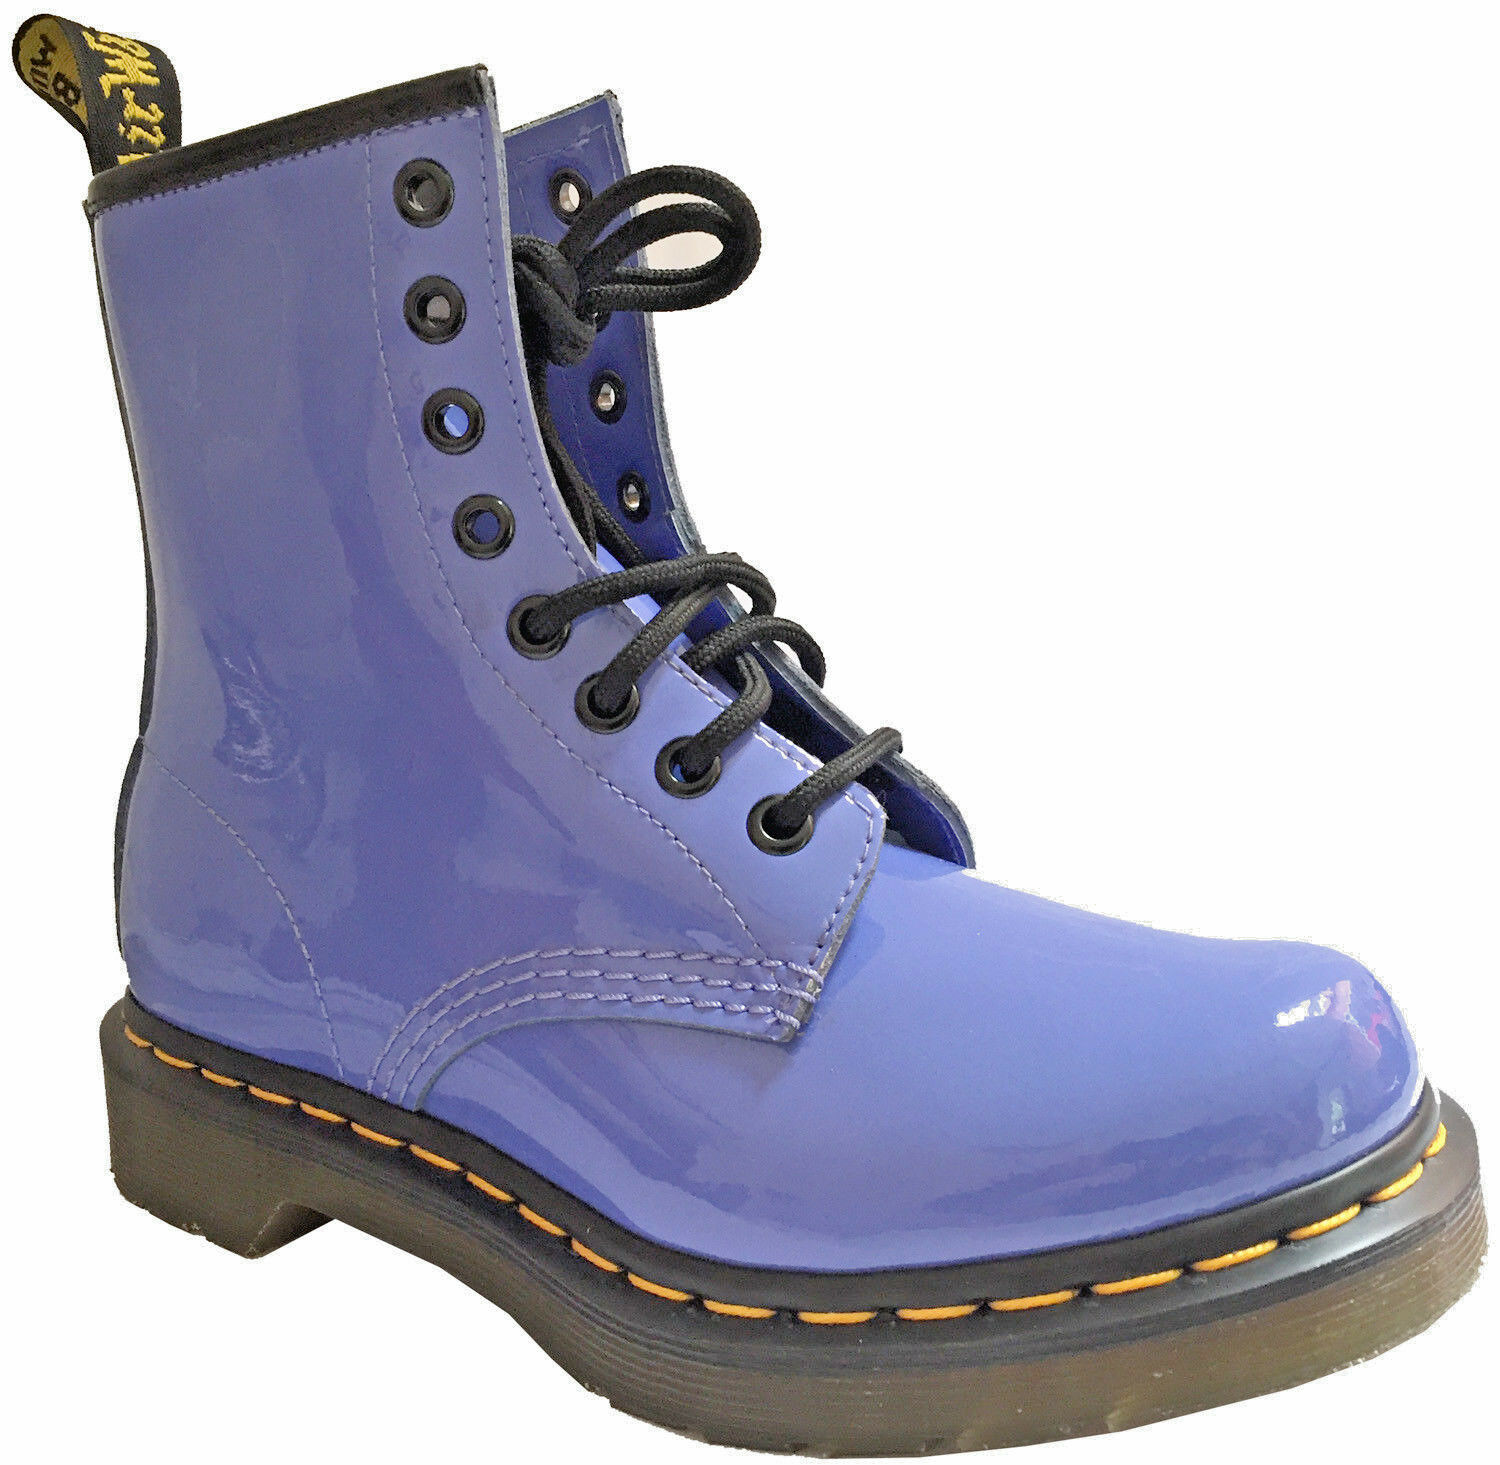 Womens Dr Martens Pastel Boots, Limited Edition Dusty bluee Patent Gloss UK 4 NEW